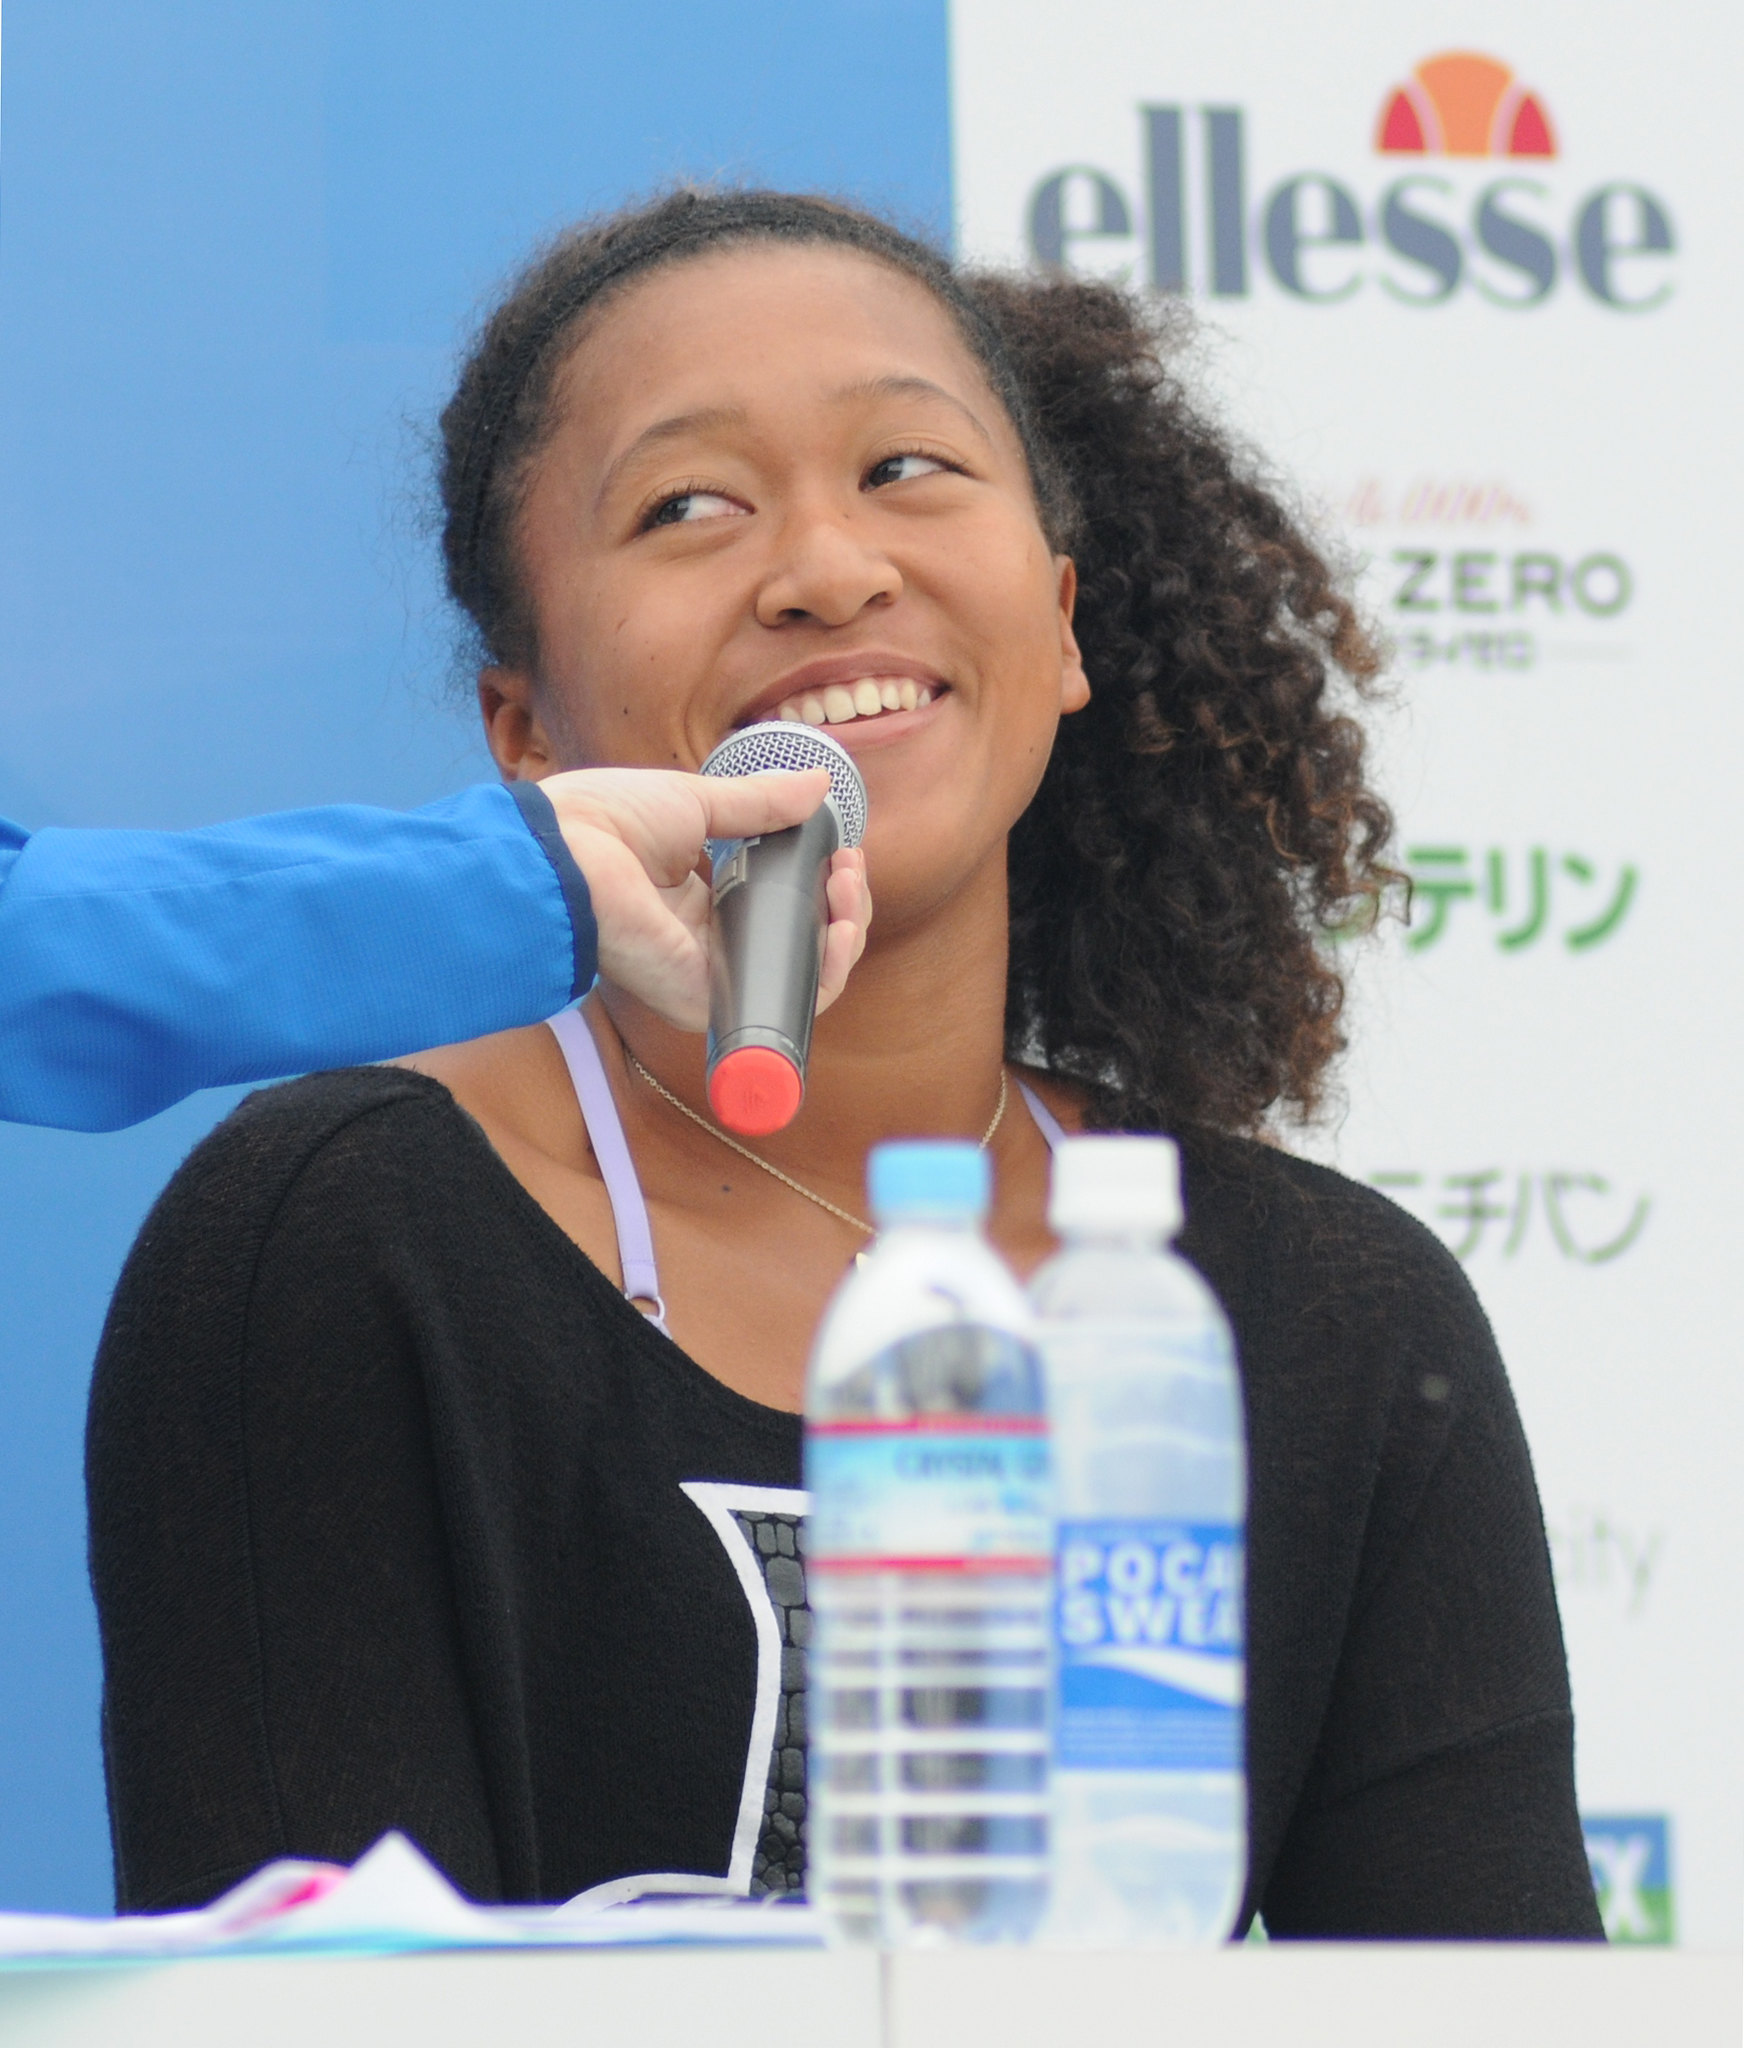 How could the French Open have handled Osaka's situation differently?